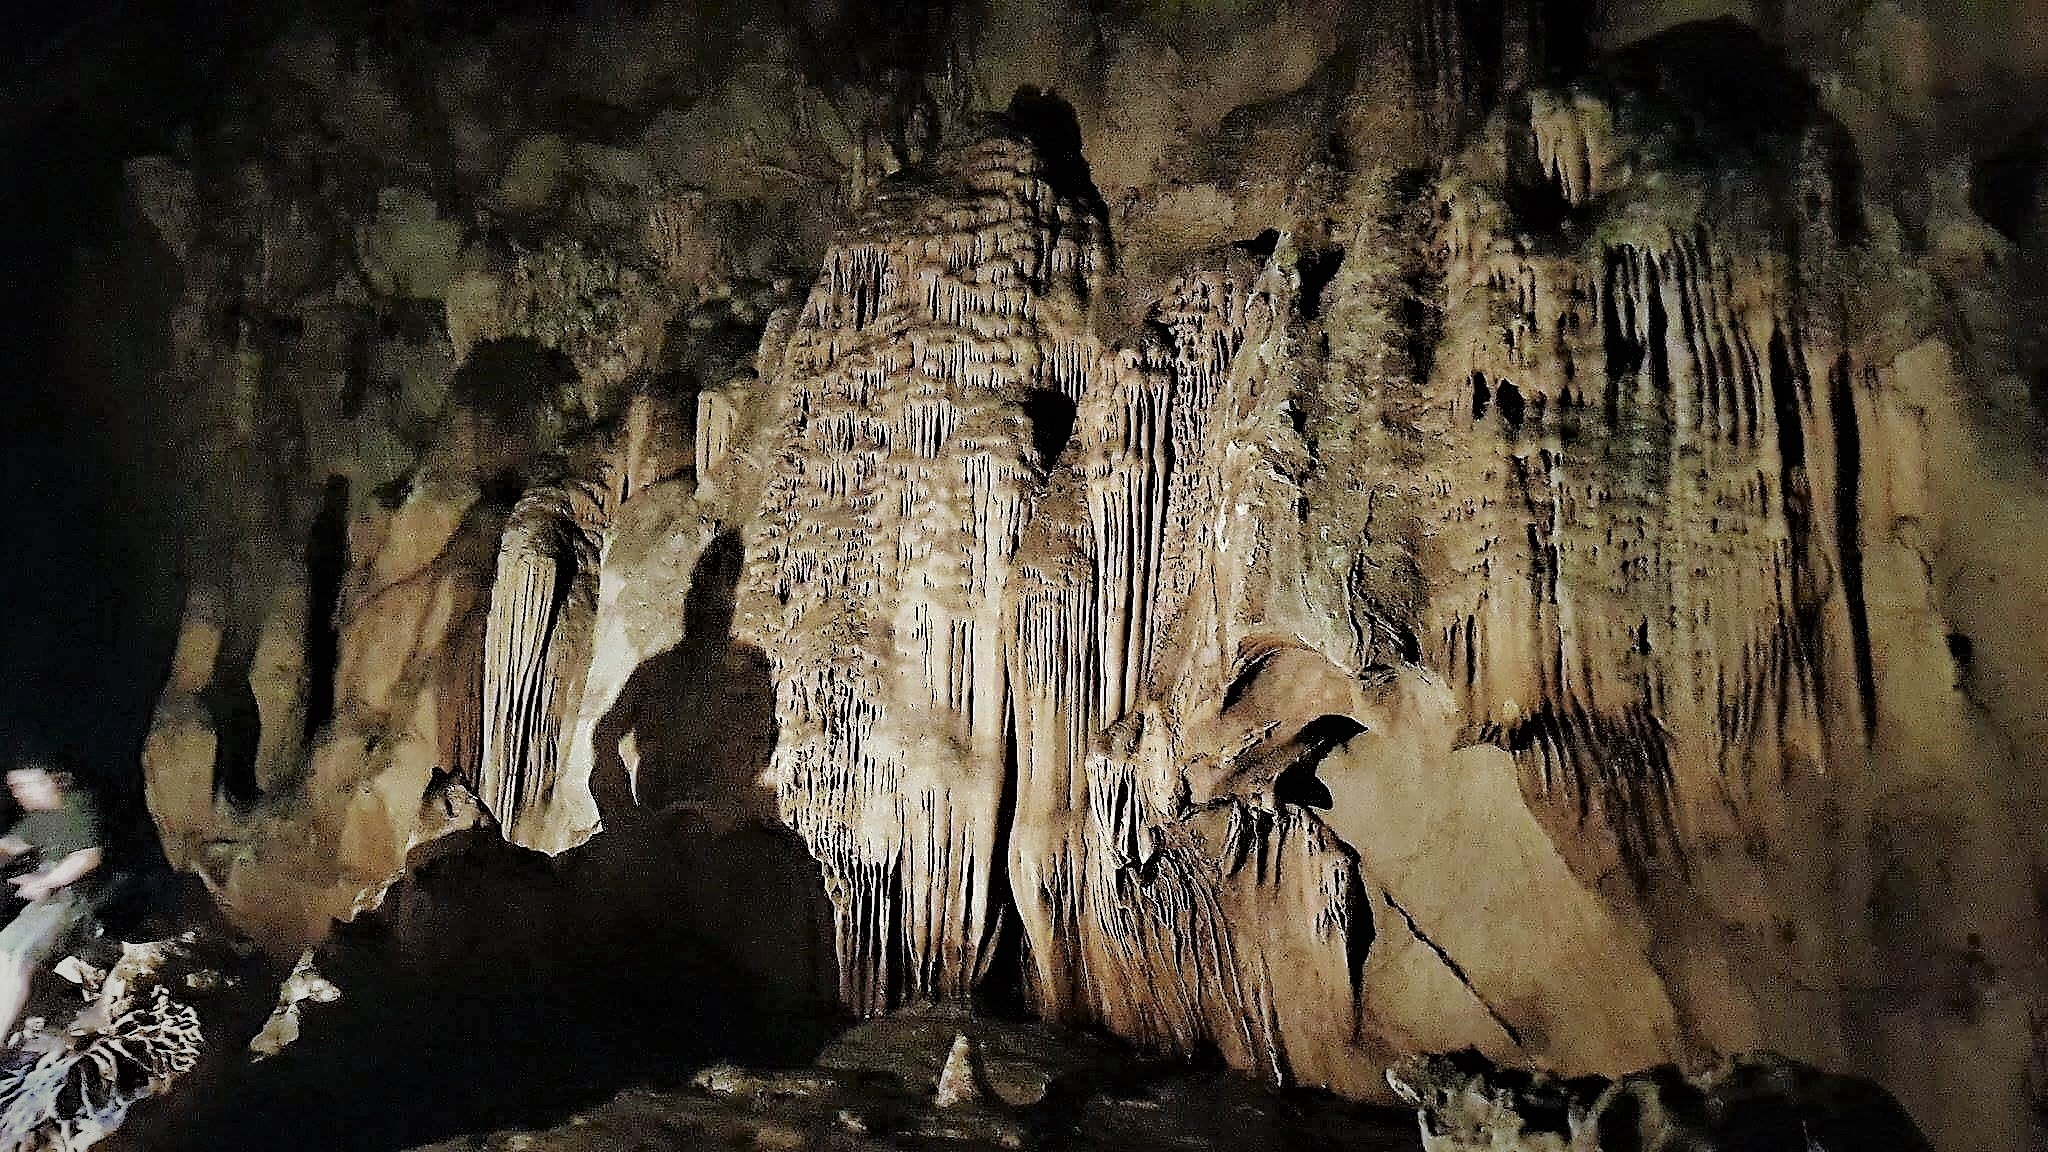 170824_1_Chiang_Dao_Cave